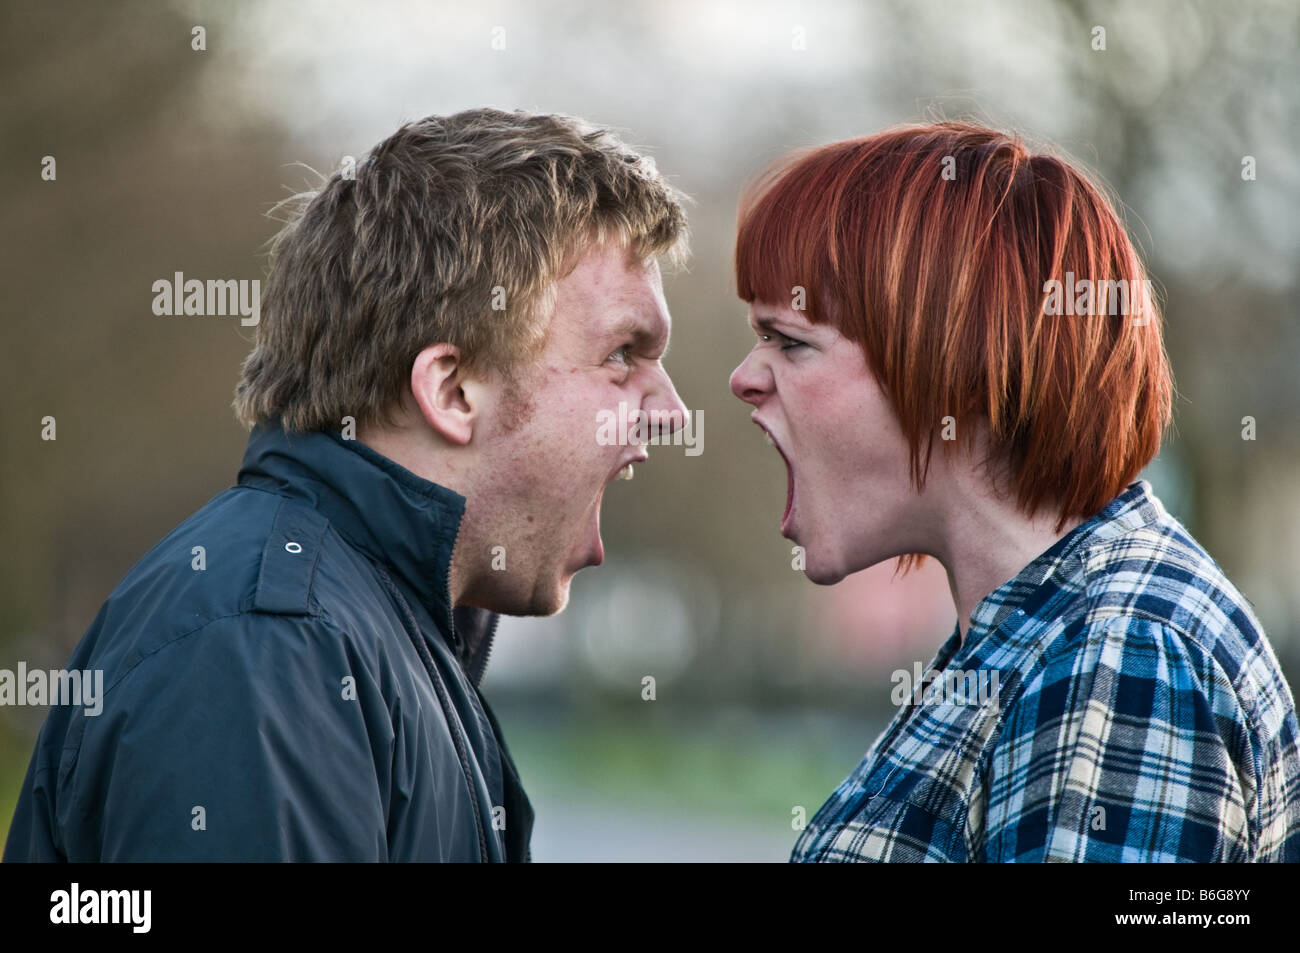 young british english couple man and woman having a full on blazing row argument shouting at each other face to - Stock Image